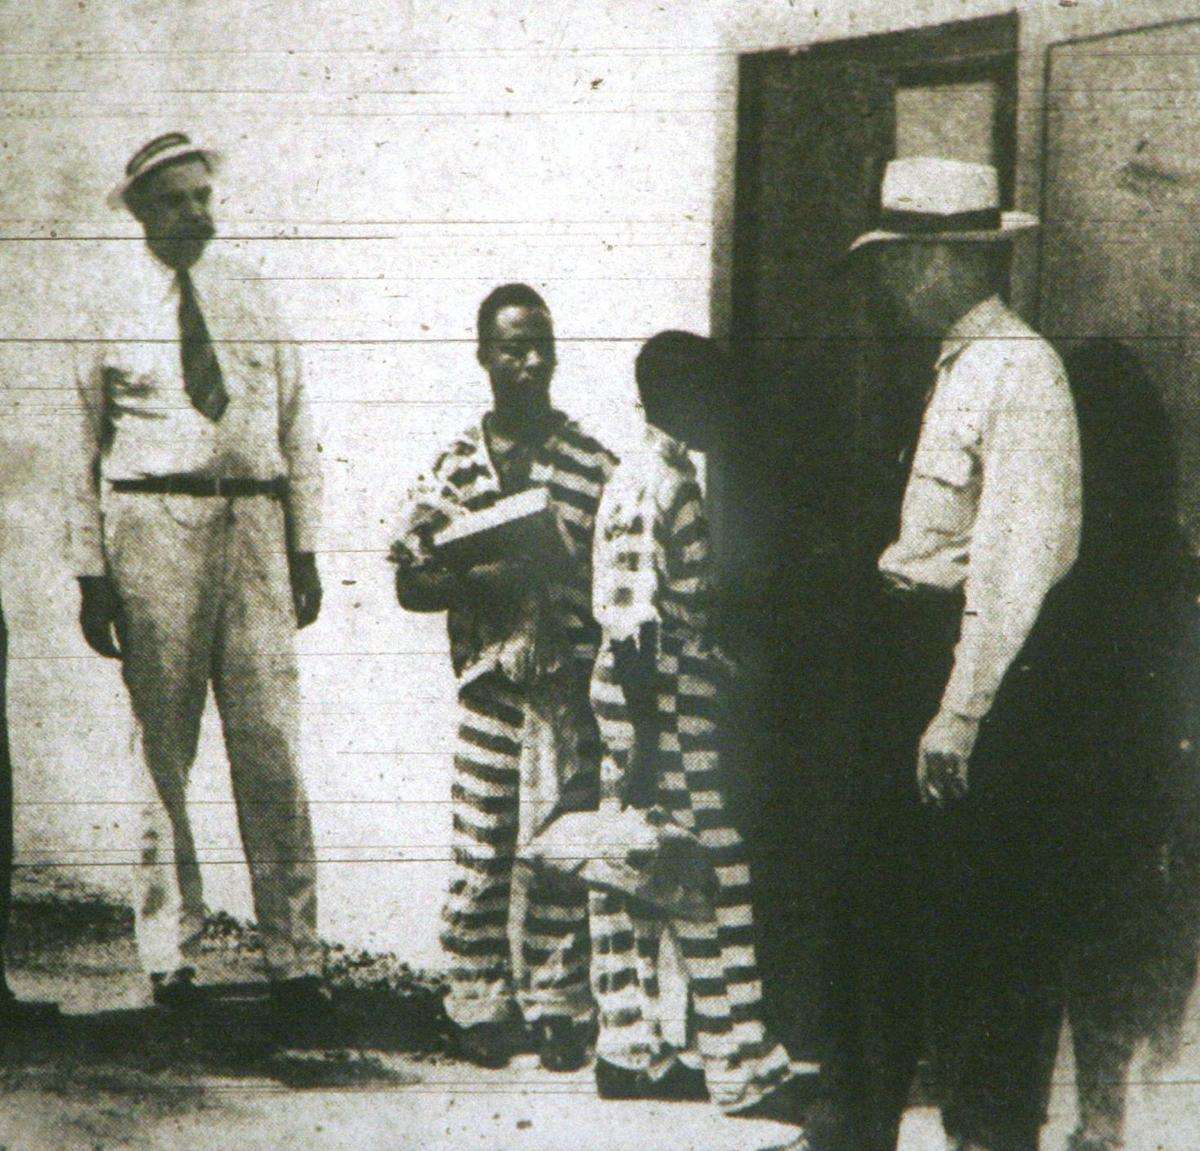 Young lawyer dusts off old evidence to cast doubt on George Stinney's conviction